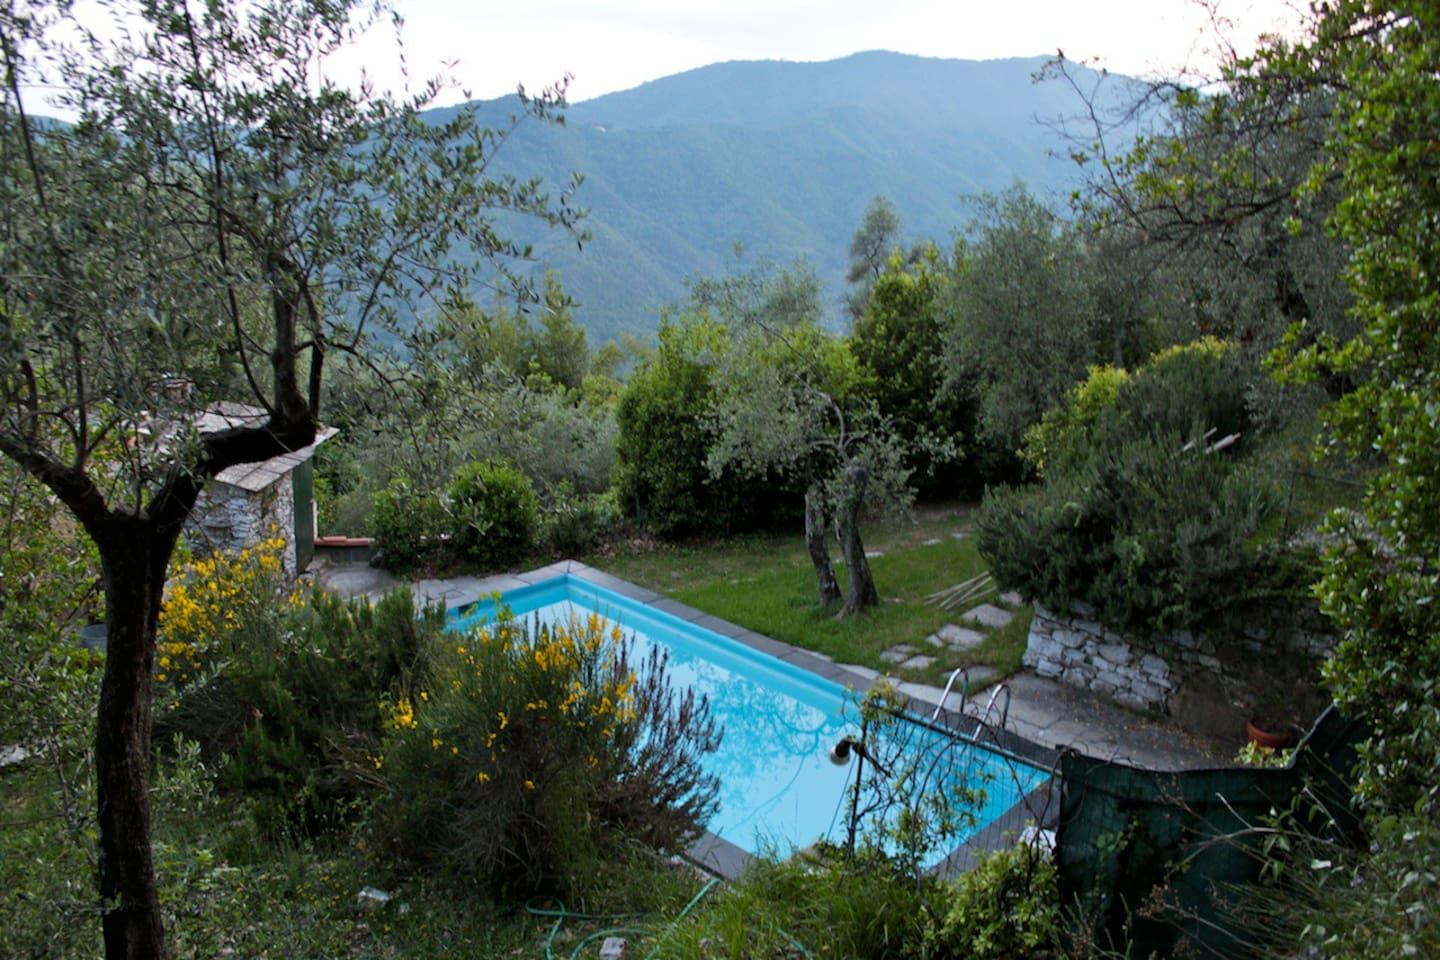 Your own private pool nestled amongst the olive trees!